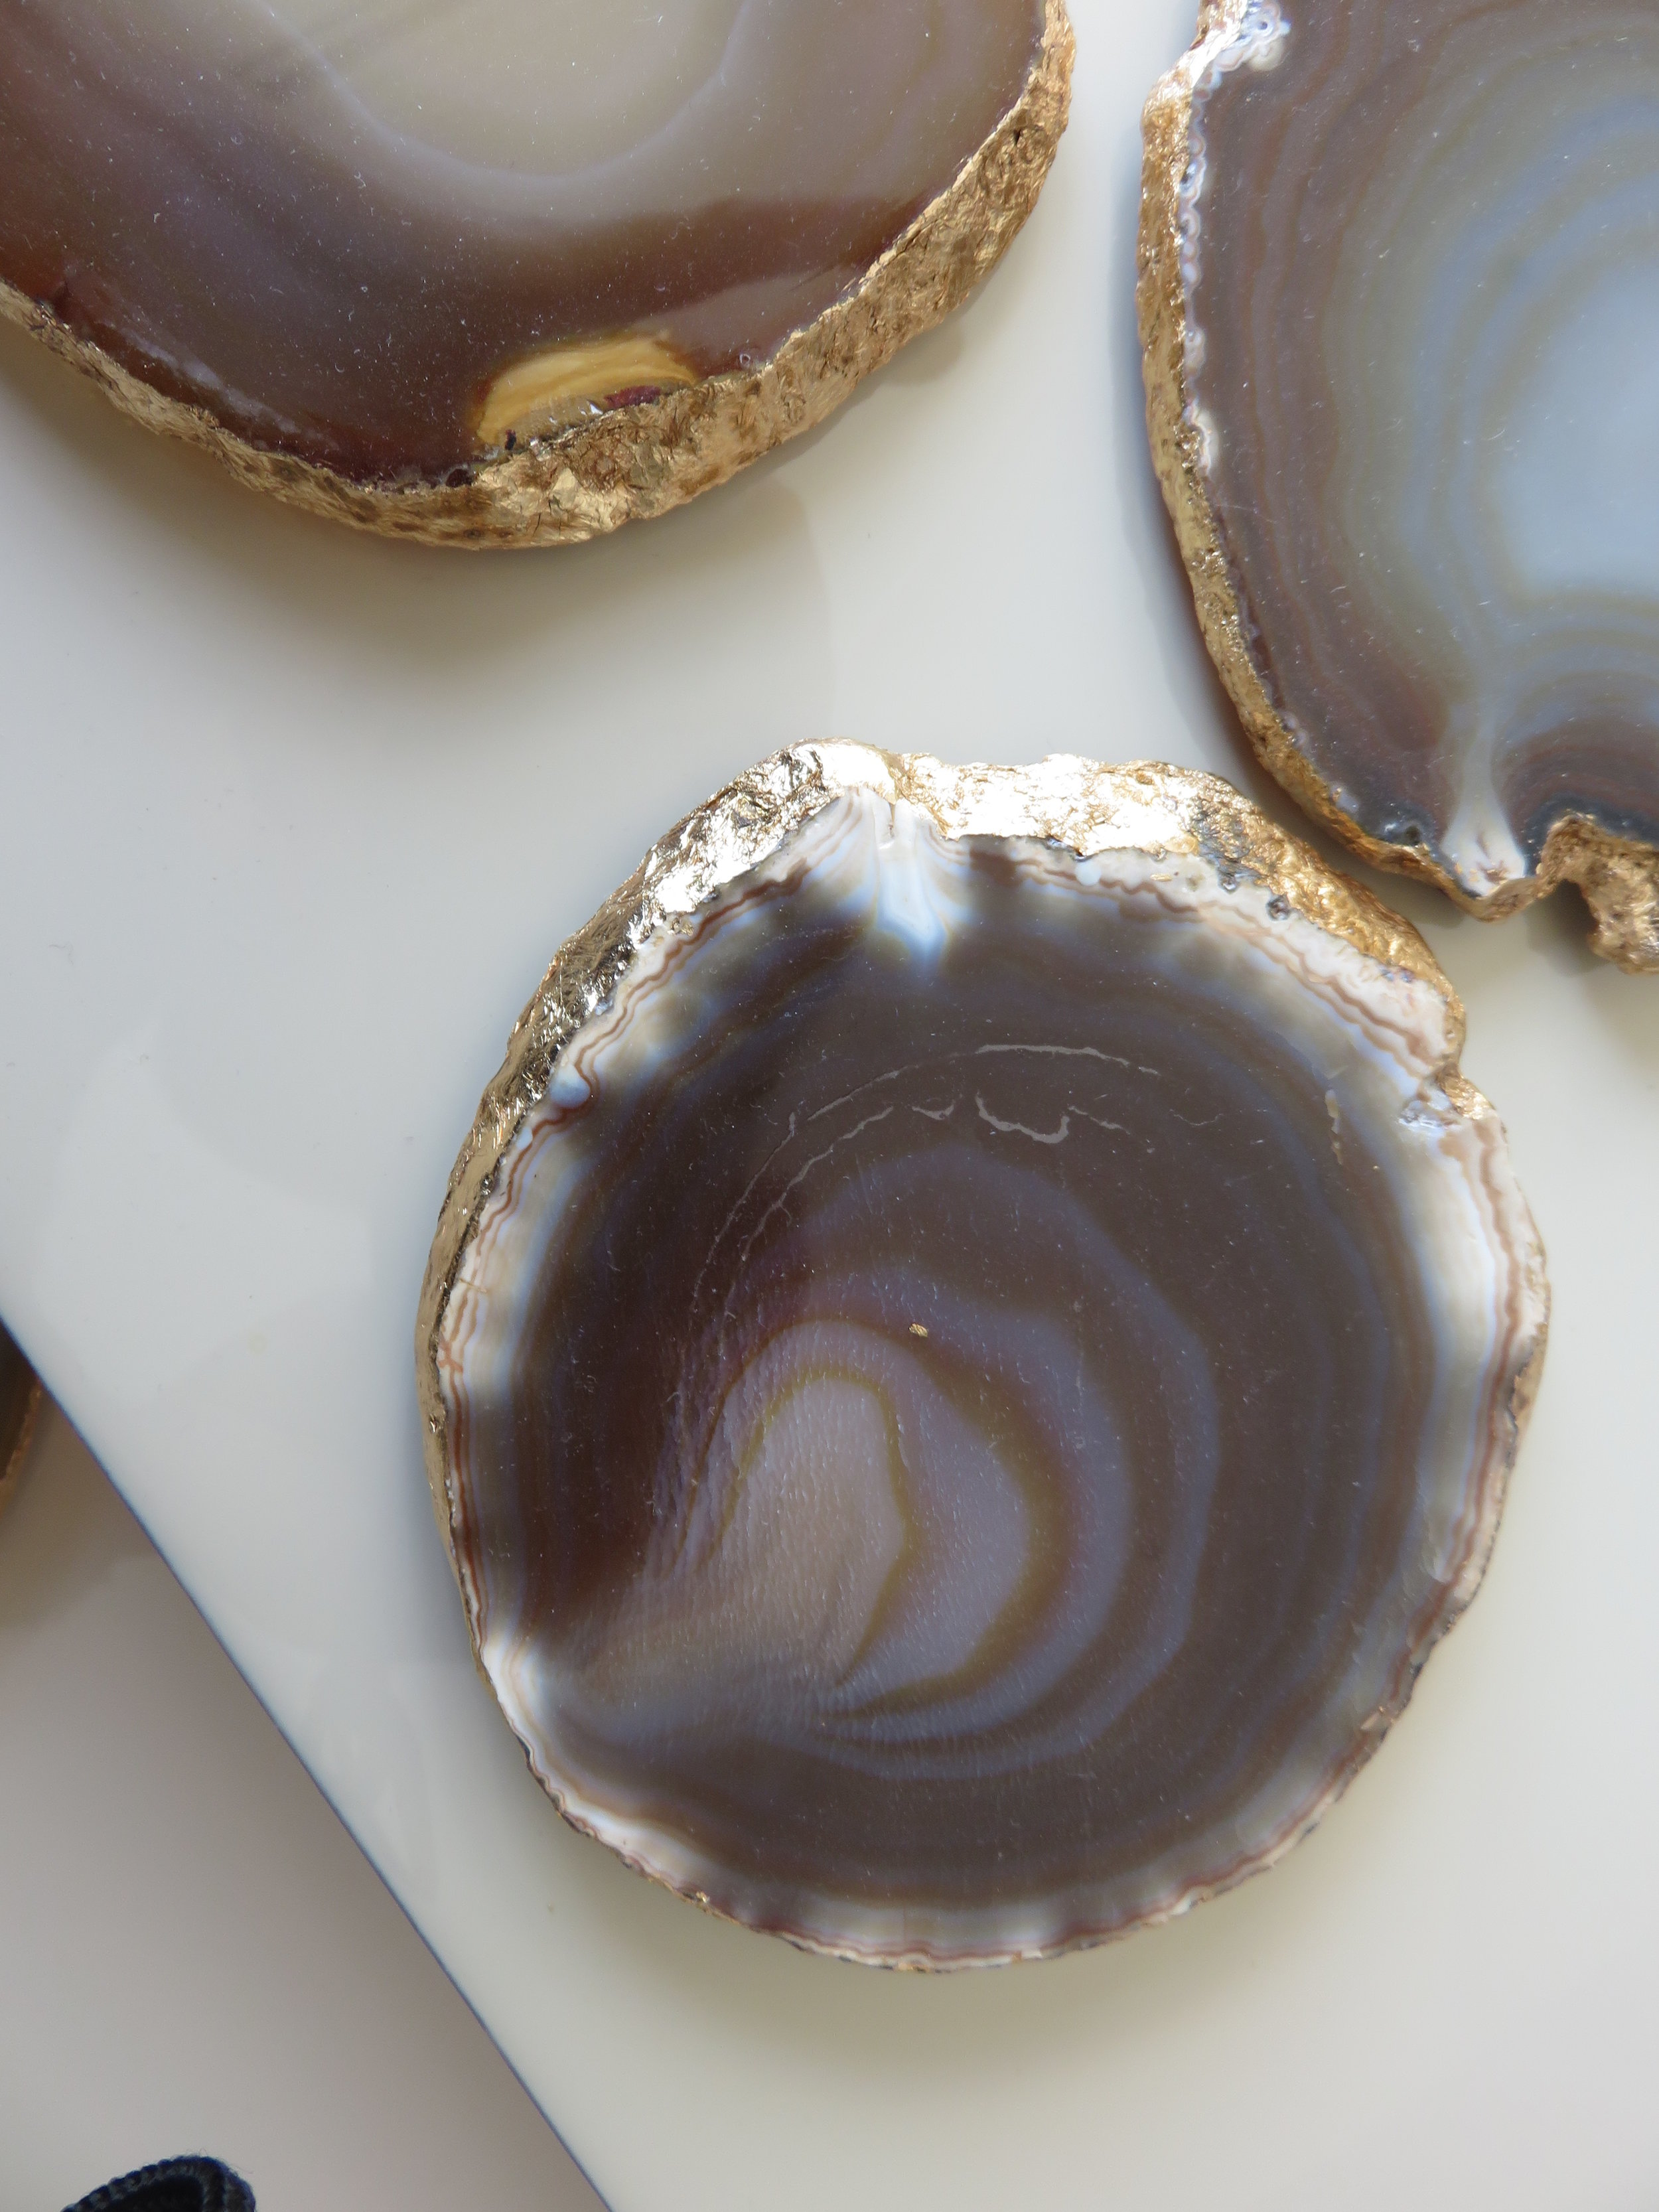 Interior designer Sonia Adams sourced these bespoke Agate coasters in natural stone